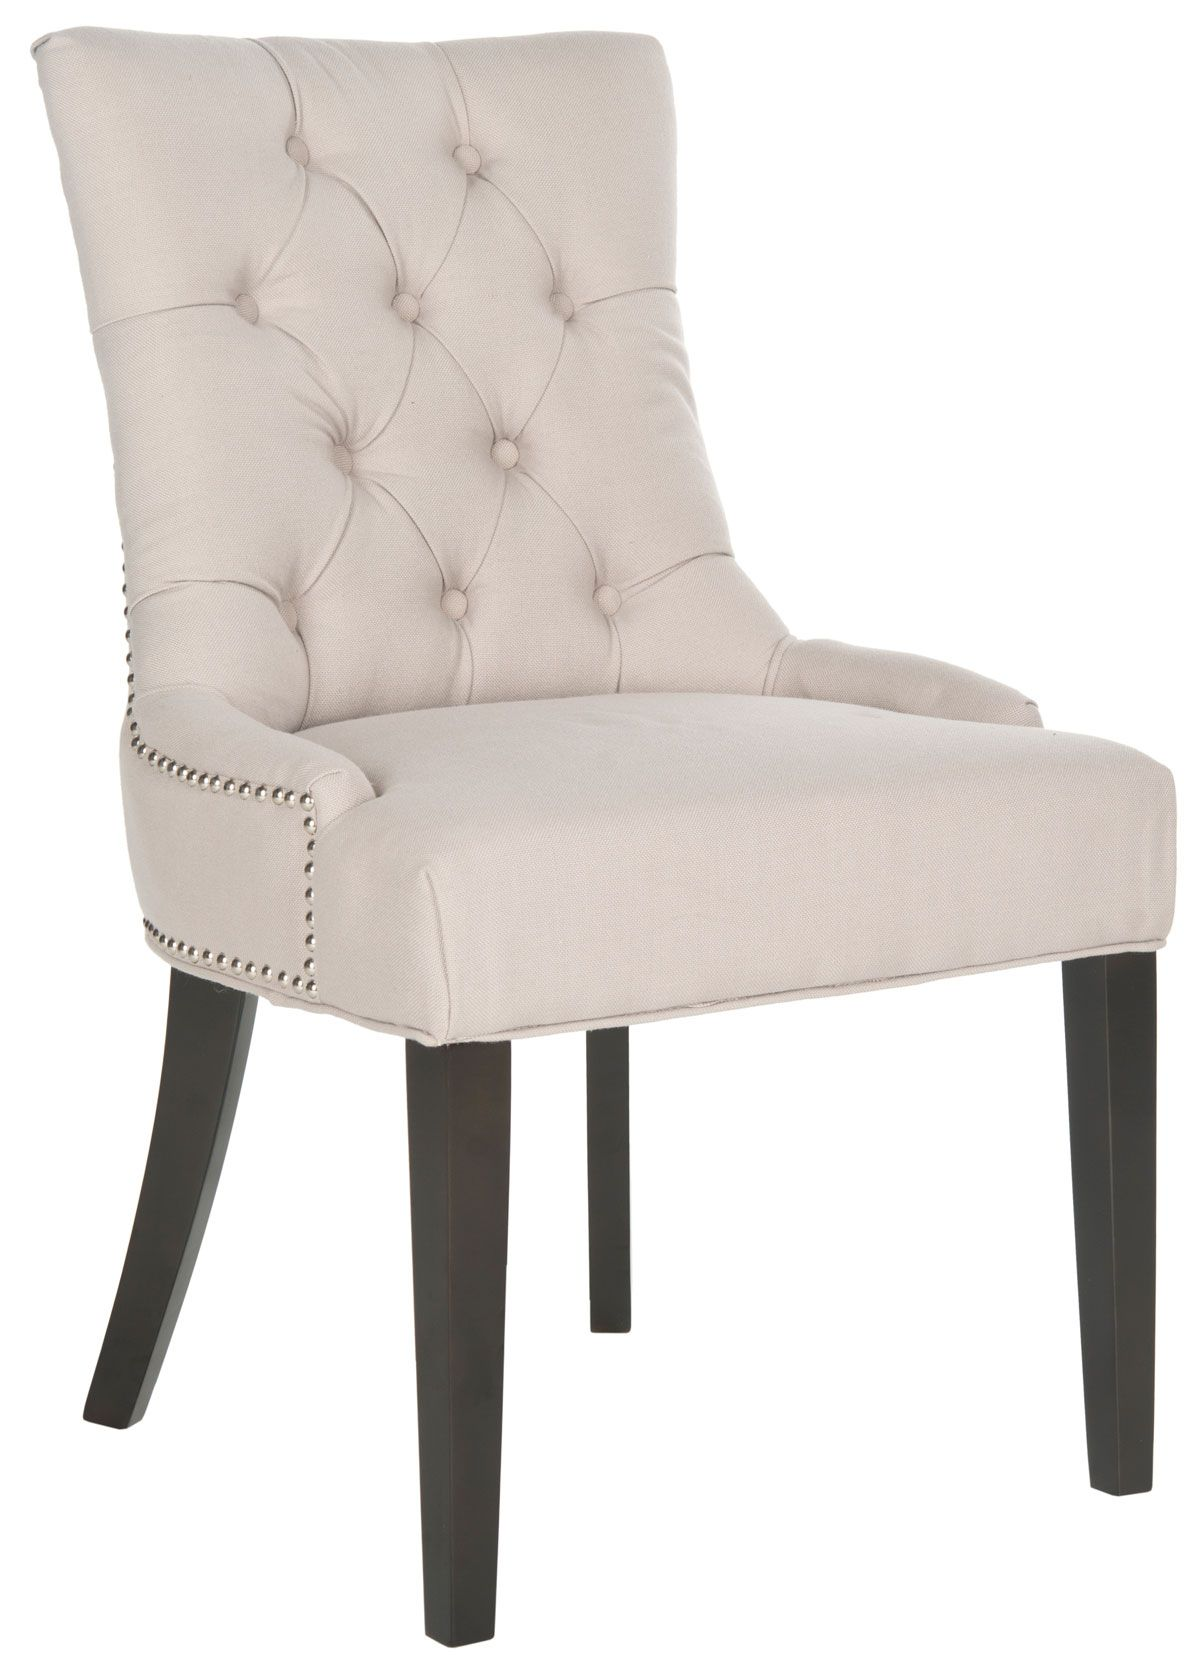 Mcr4716a Set2 Dining Chairs Furniture By Linen Dining Chairs